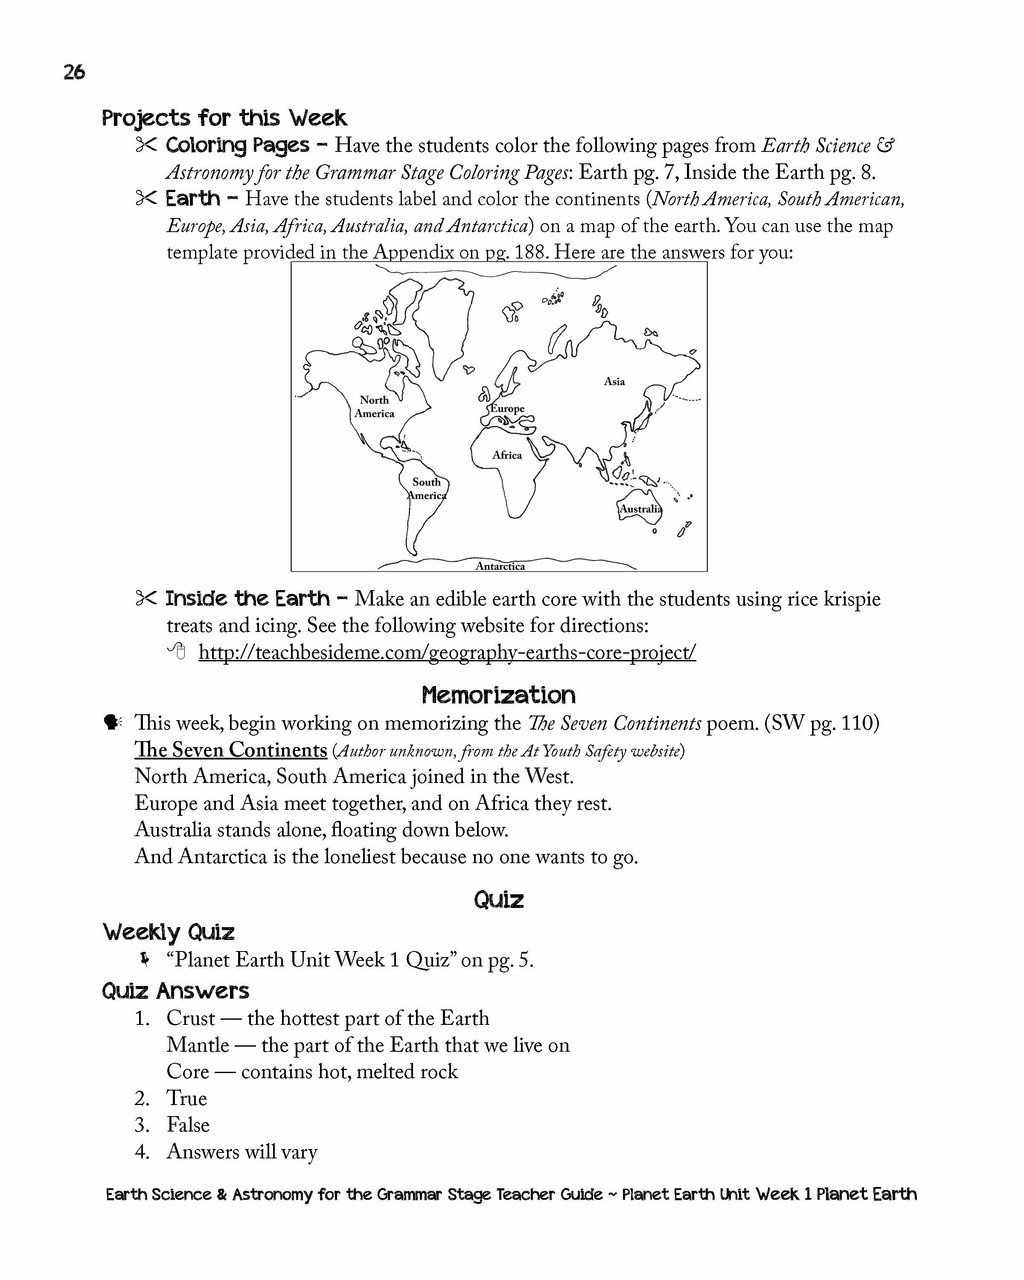 Earth science and astronomy for the grammar stage ebook classical science earth science astronomy for the grammar stage ebook fandeluxe Choice Image